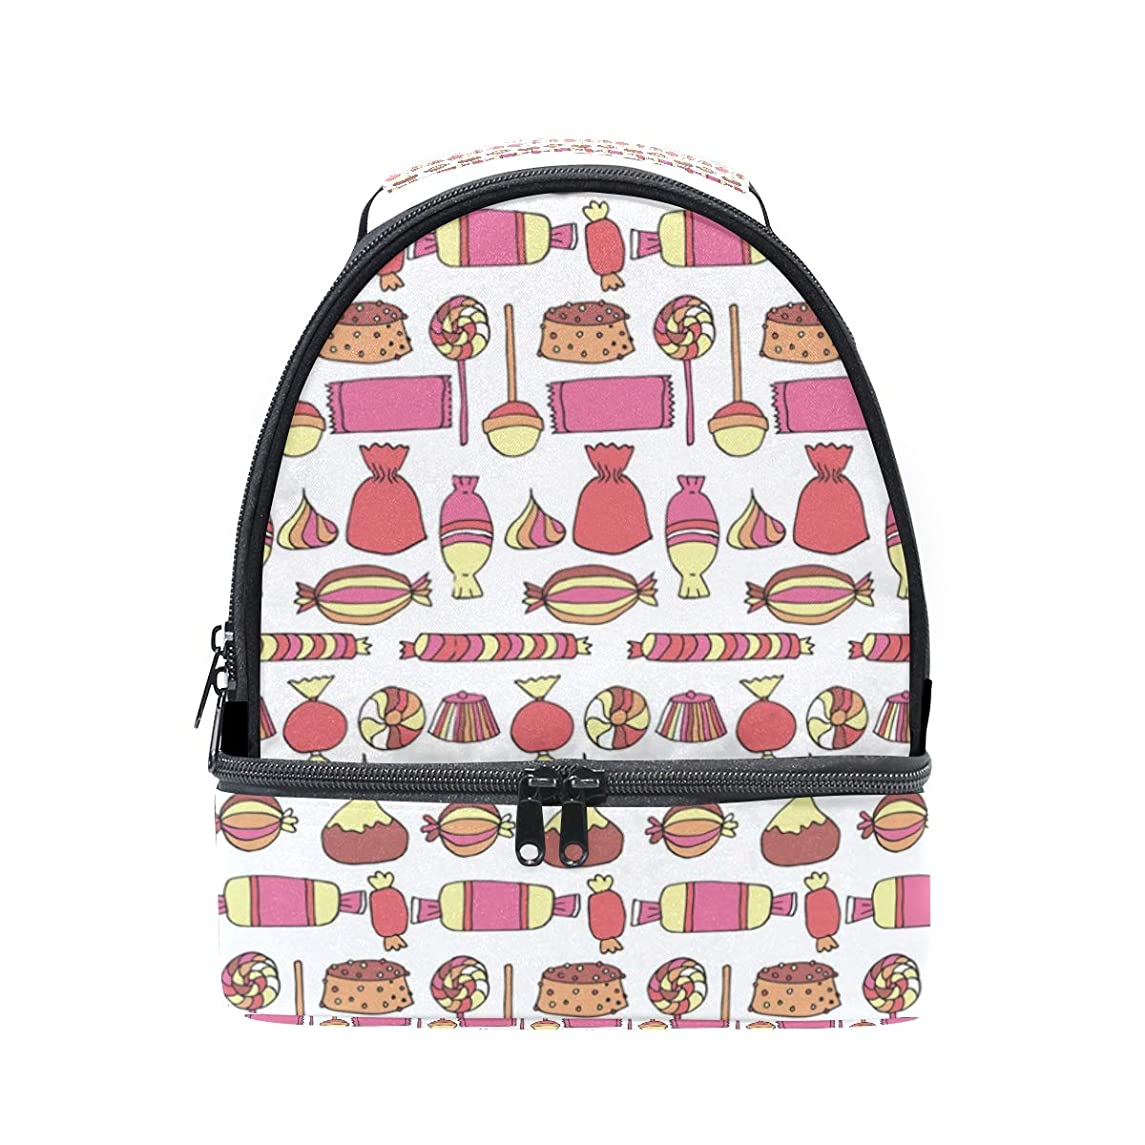 Candy Bars Bags Cup Cake Red Double Lunch Tote Bag for Women Men and Kids, Soft Leak Proof Cooler Lunch Box with Adjustable Shoulder Strap Zipper for Work Picnic Camping